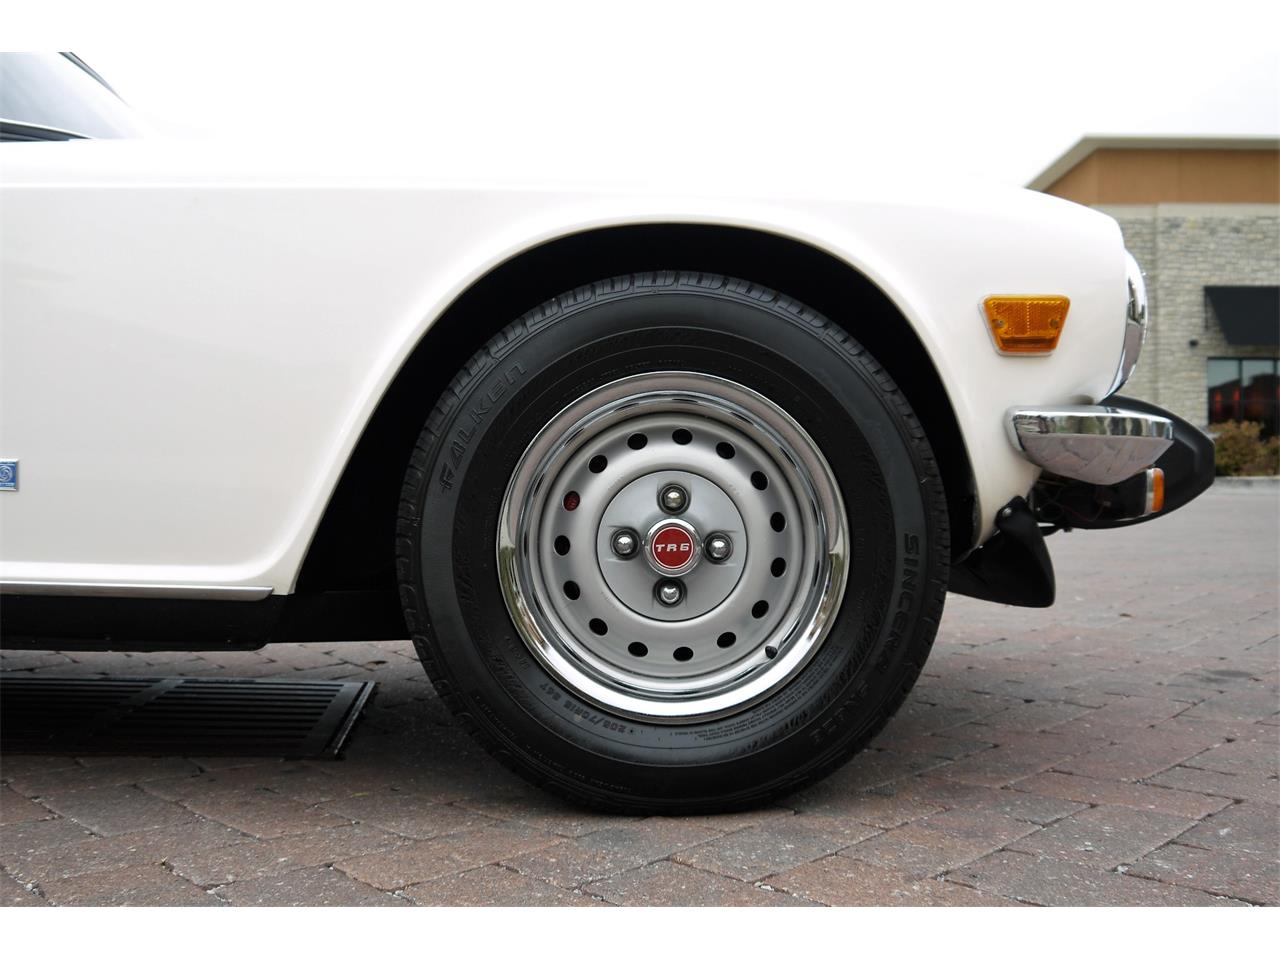 1976 Triumph TR6 for sale in Brentwood, TN – photo 16